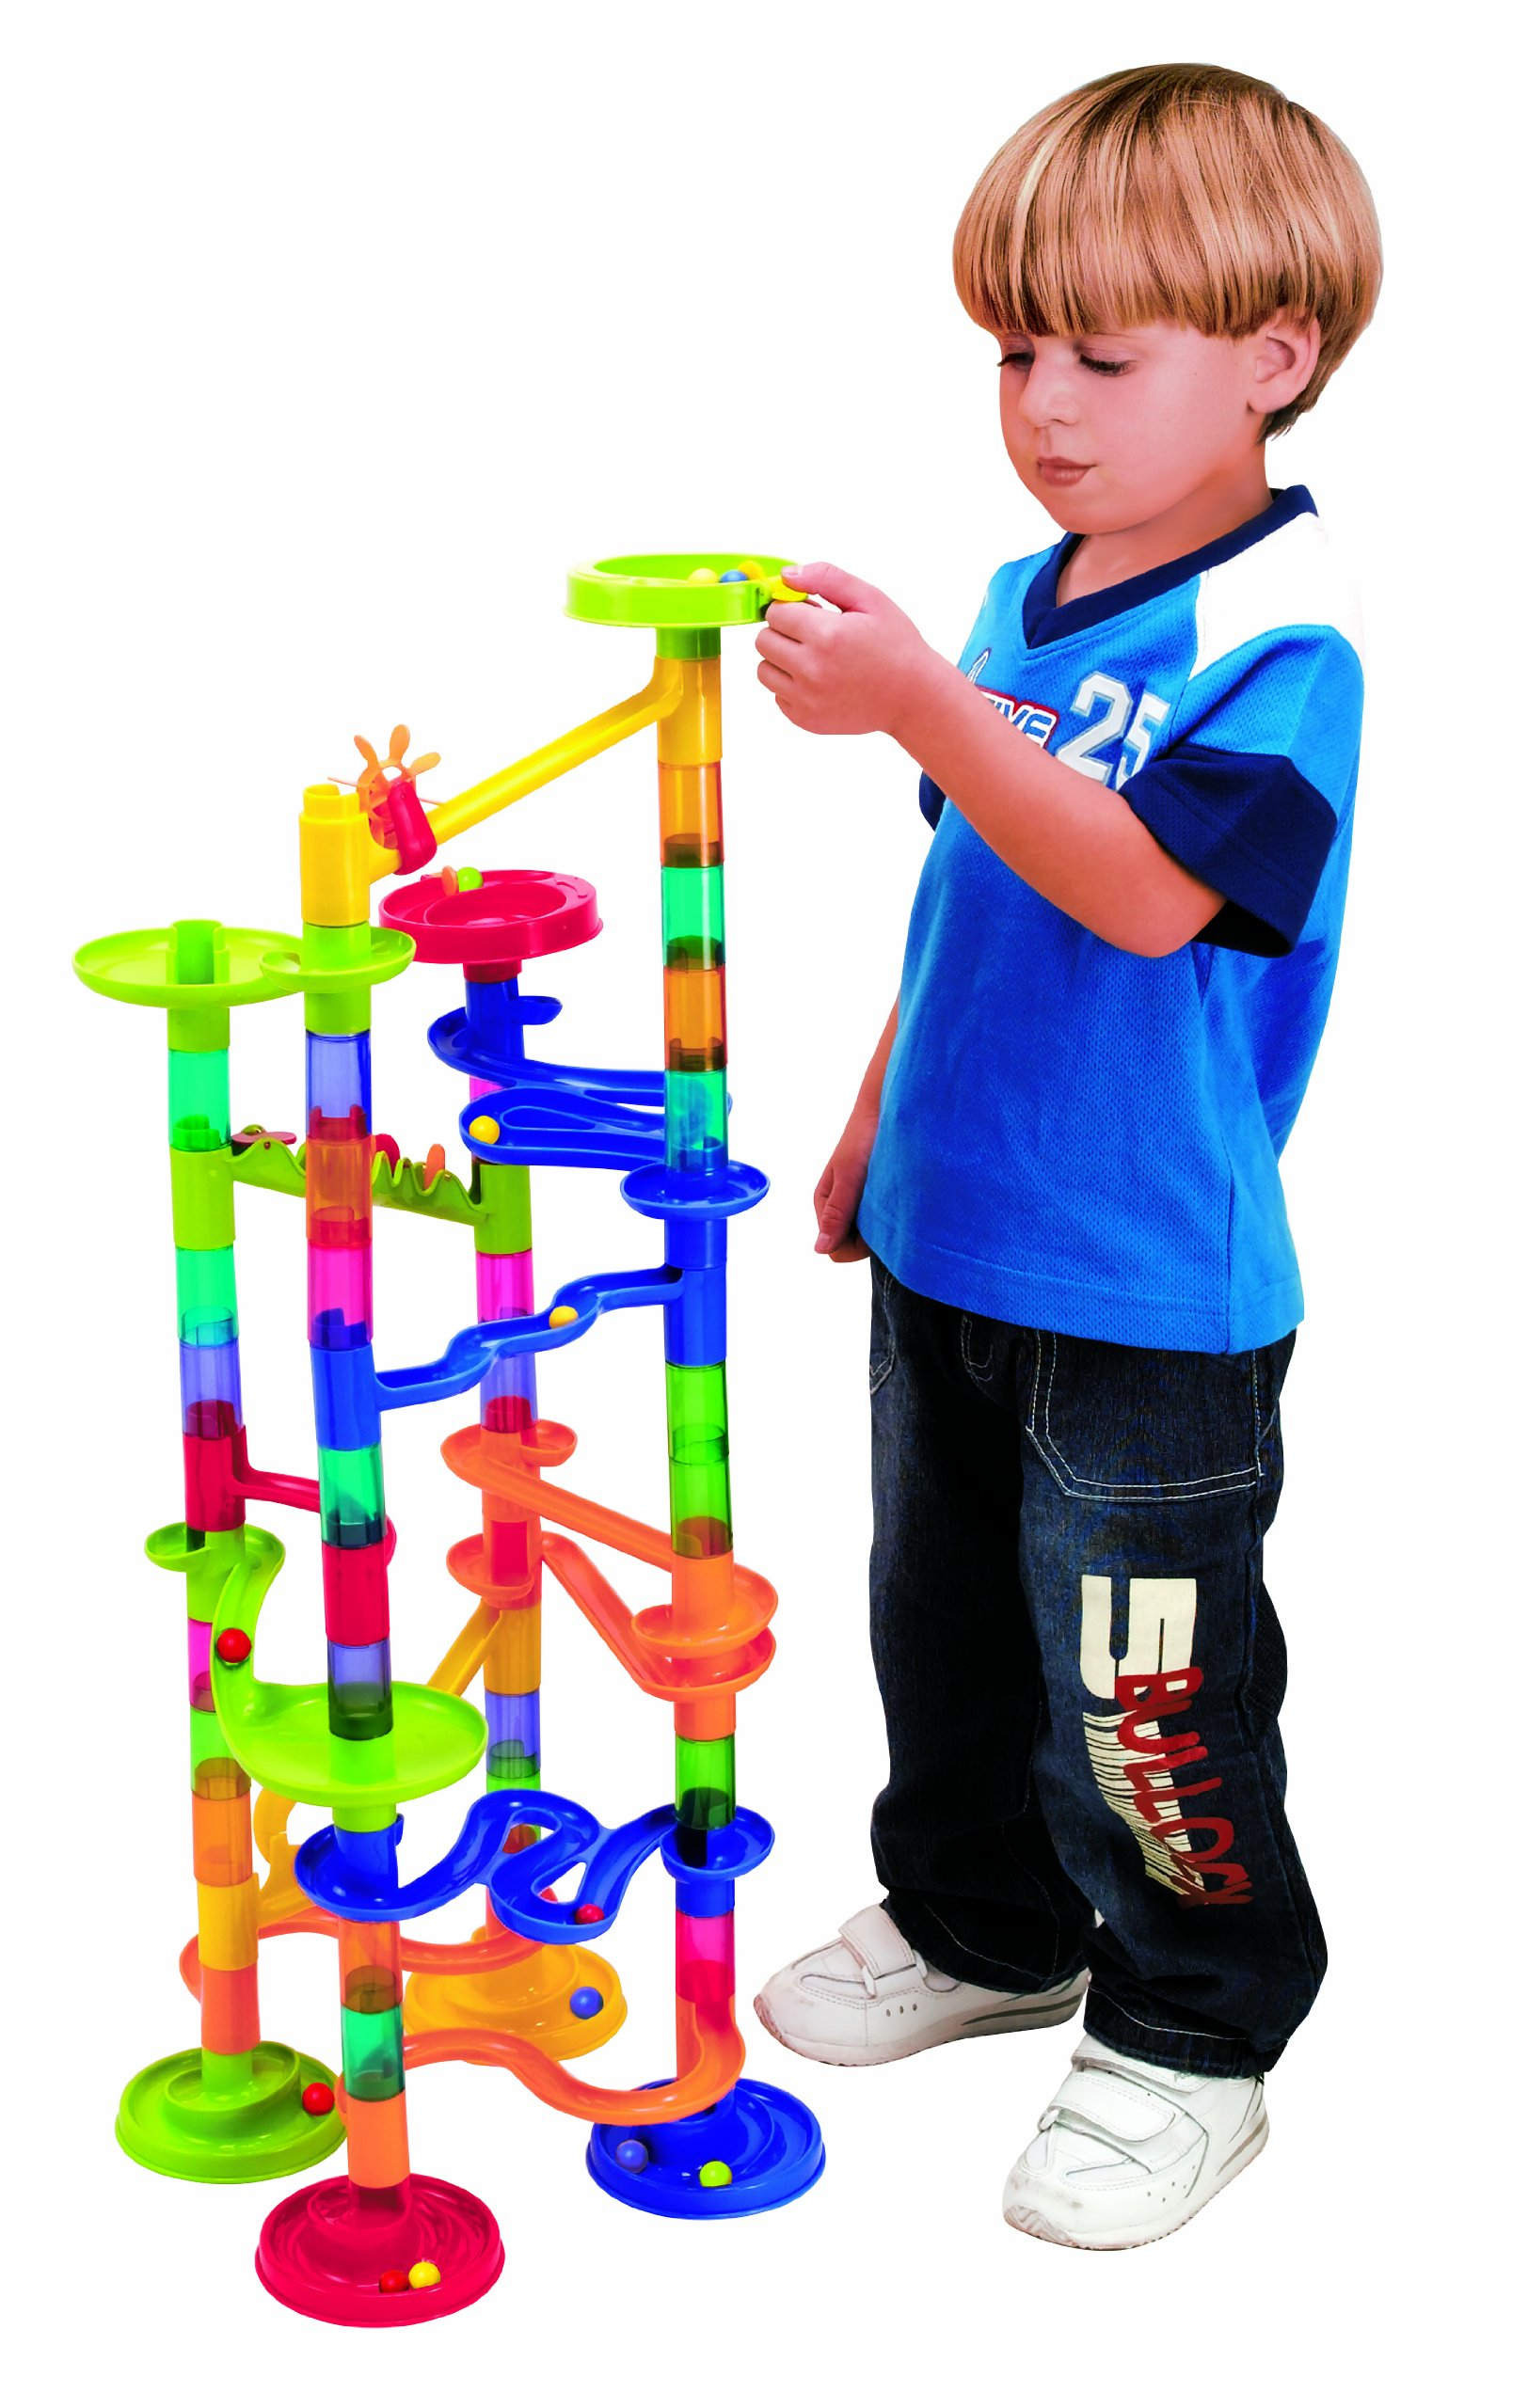 PlayGo Marble Race Deluxe Building, 100-Piece by PlayGo (Image #2)